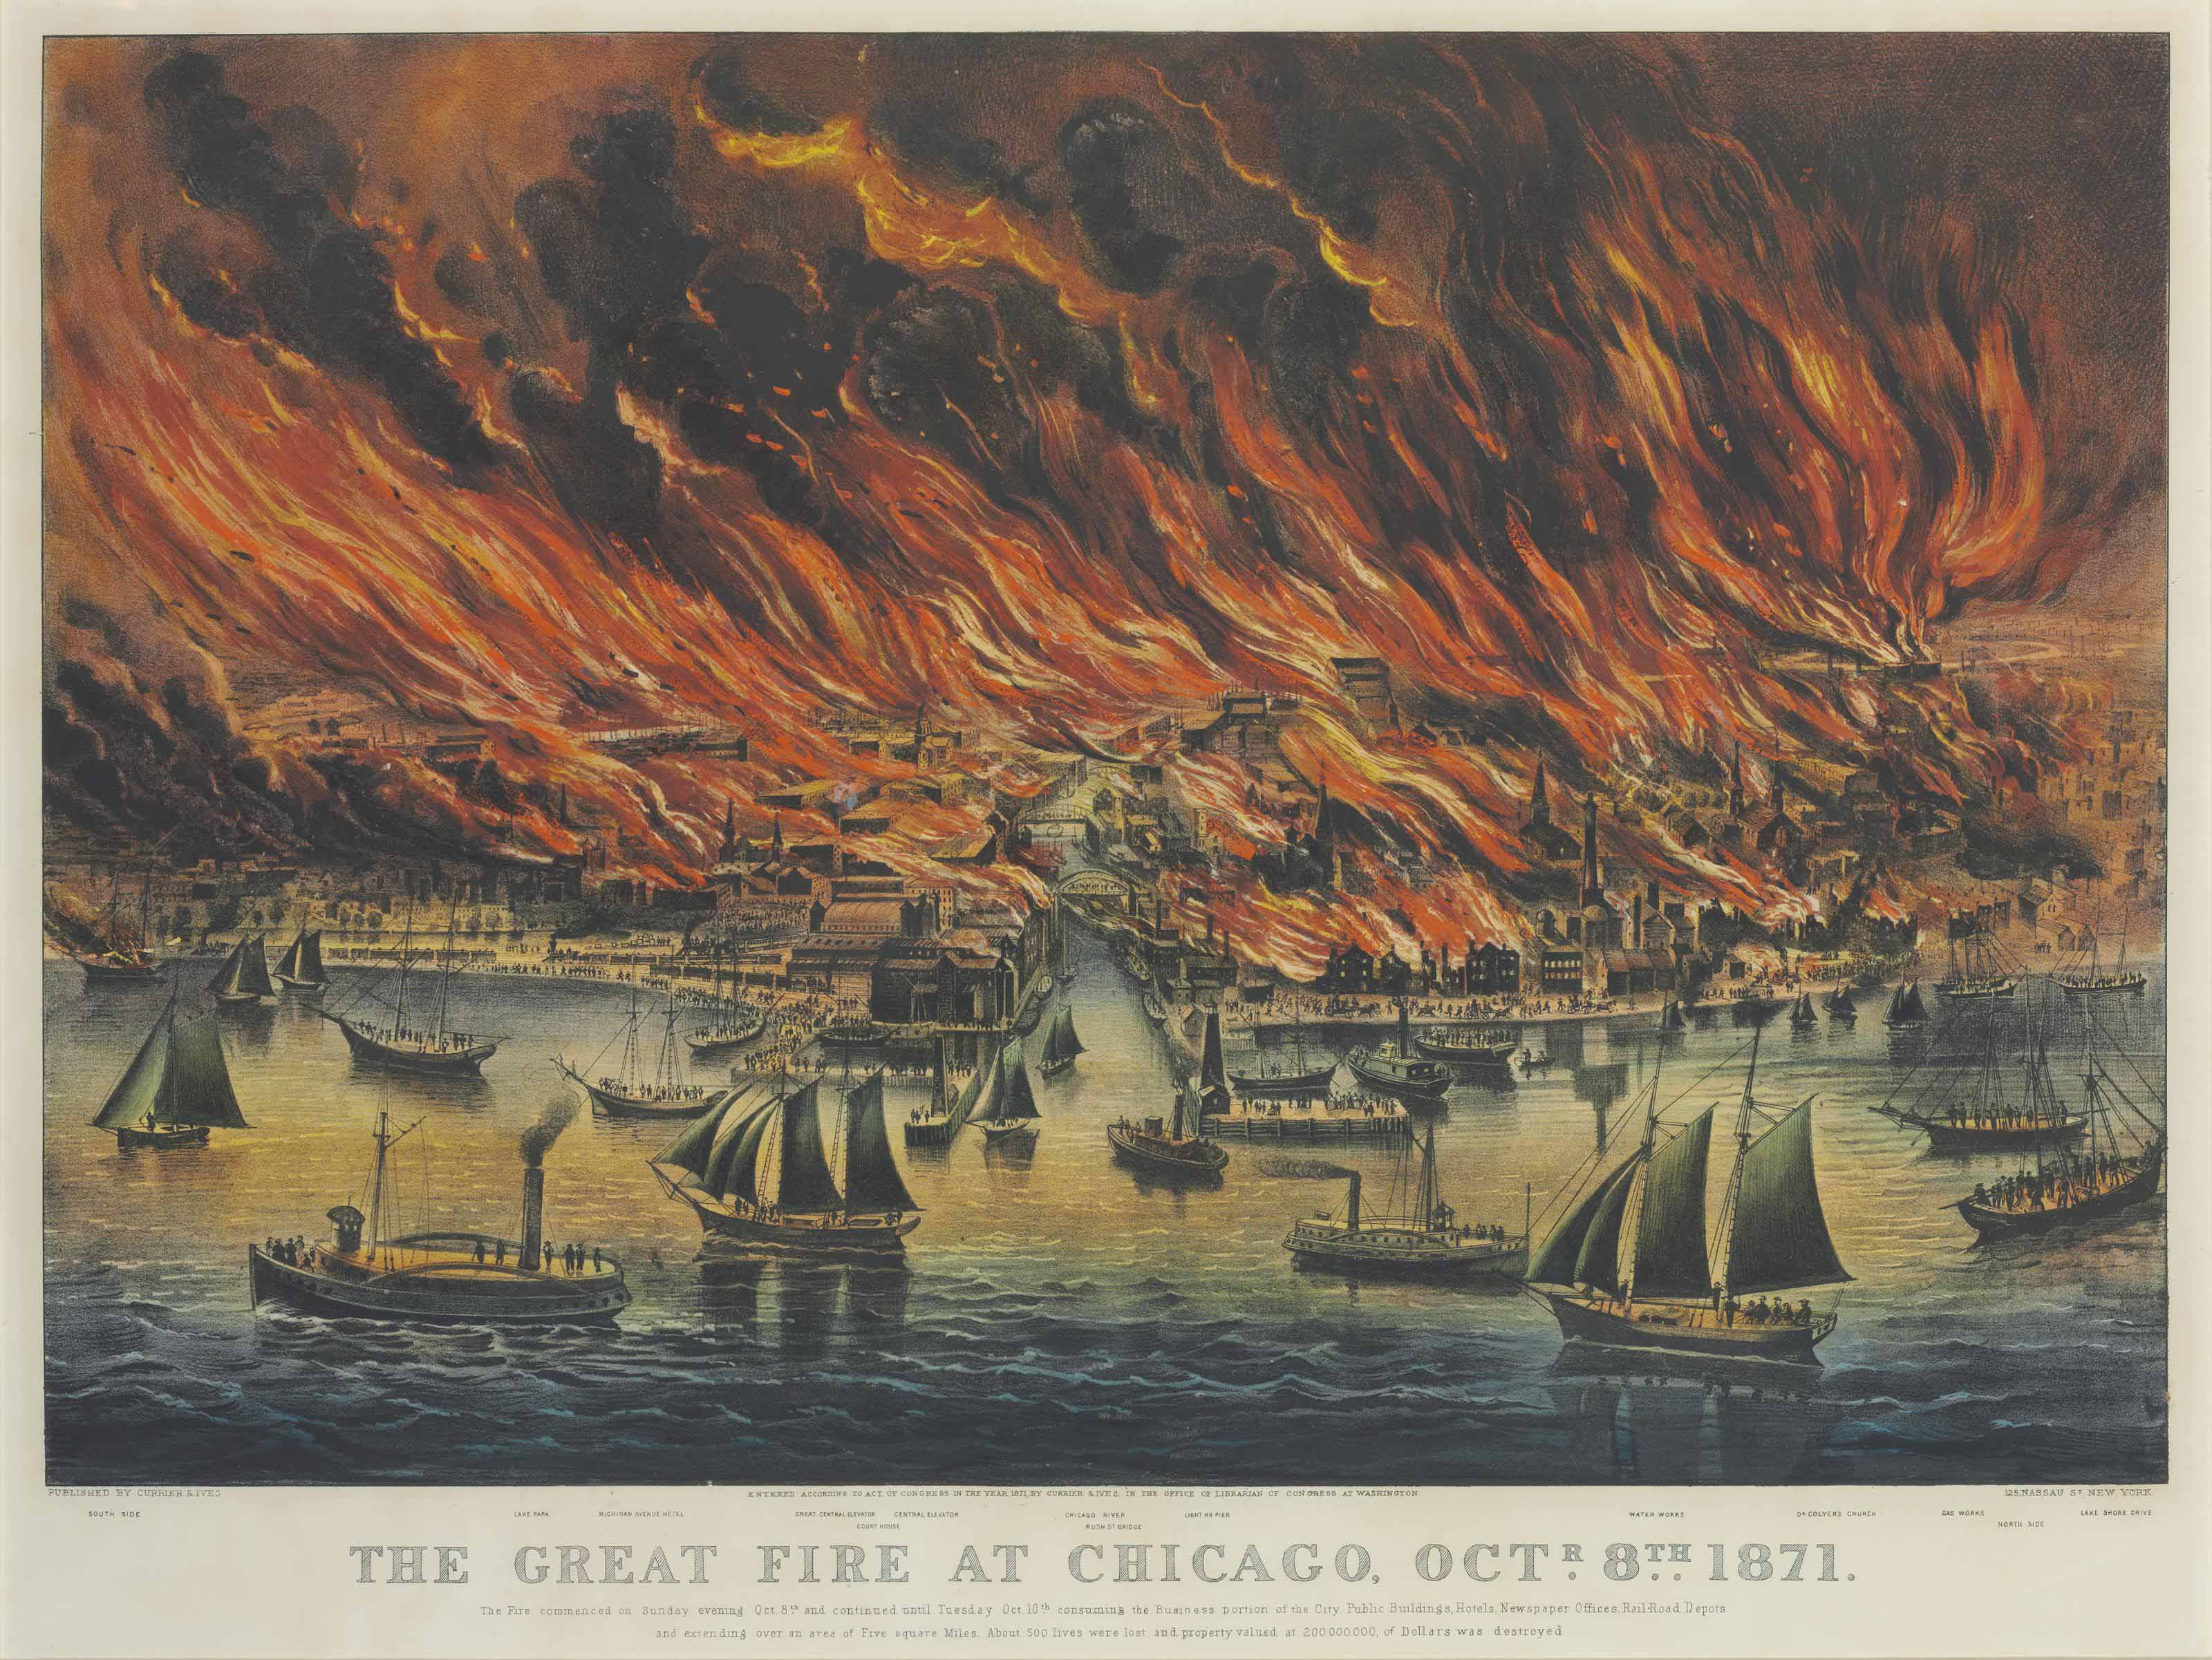 https://www.christies.com/img/LotImages/2016/NYR/2016_NYR_12262_0317_000(chicago_fire_currier_and_ives_publishers_the_great_fire_at_chicago_oct).jpg